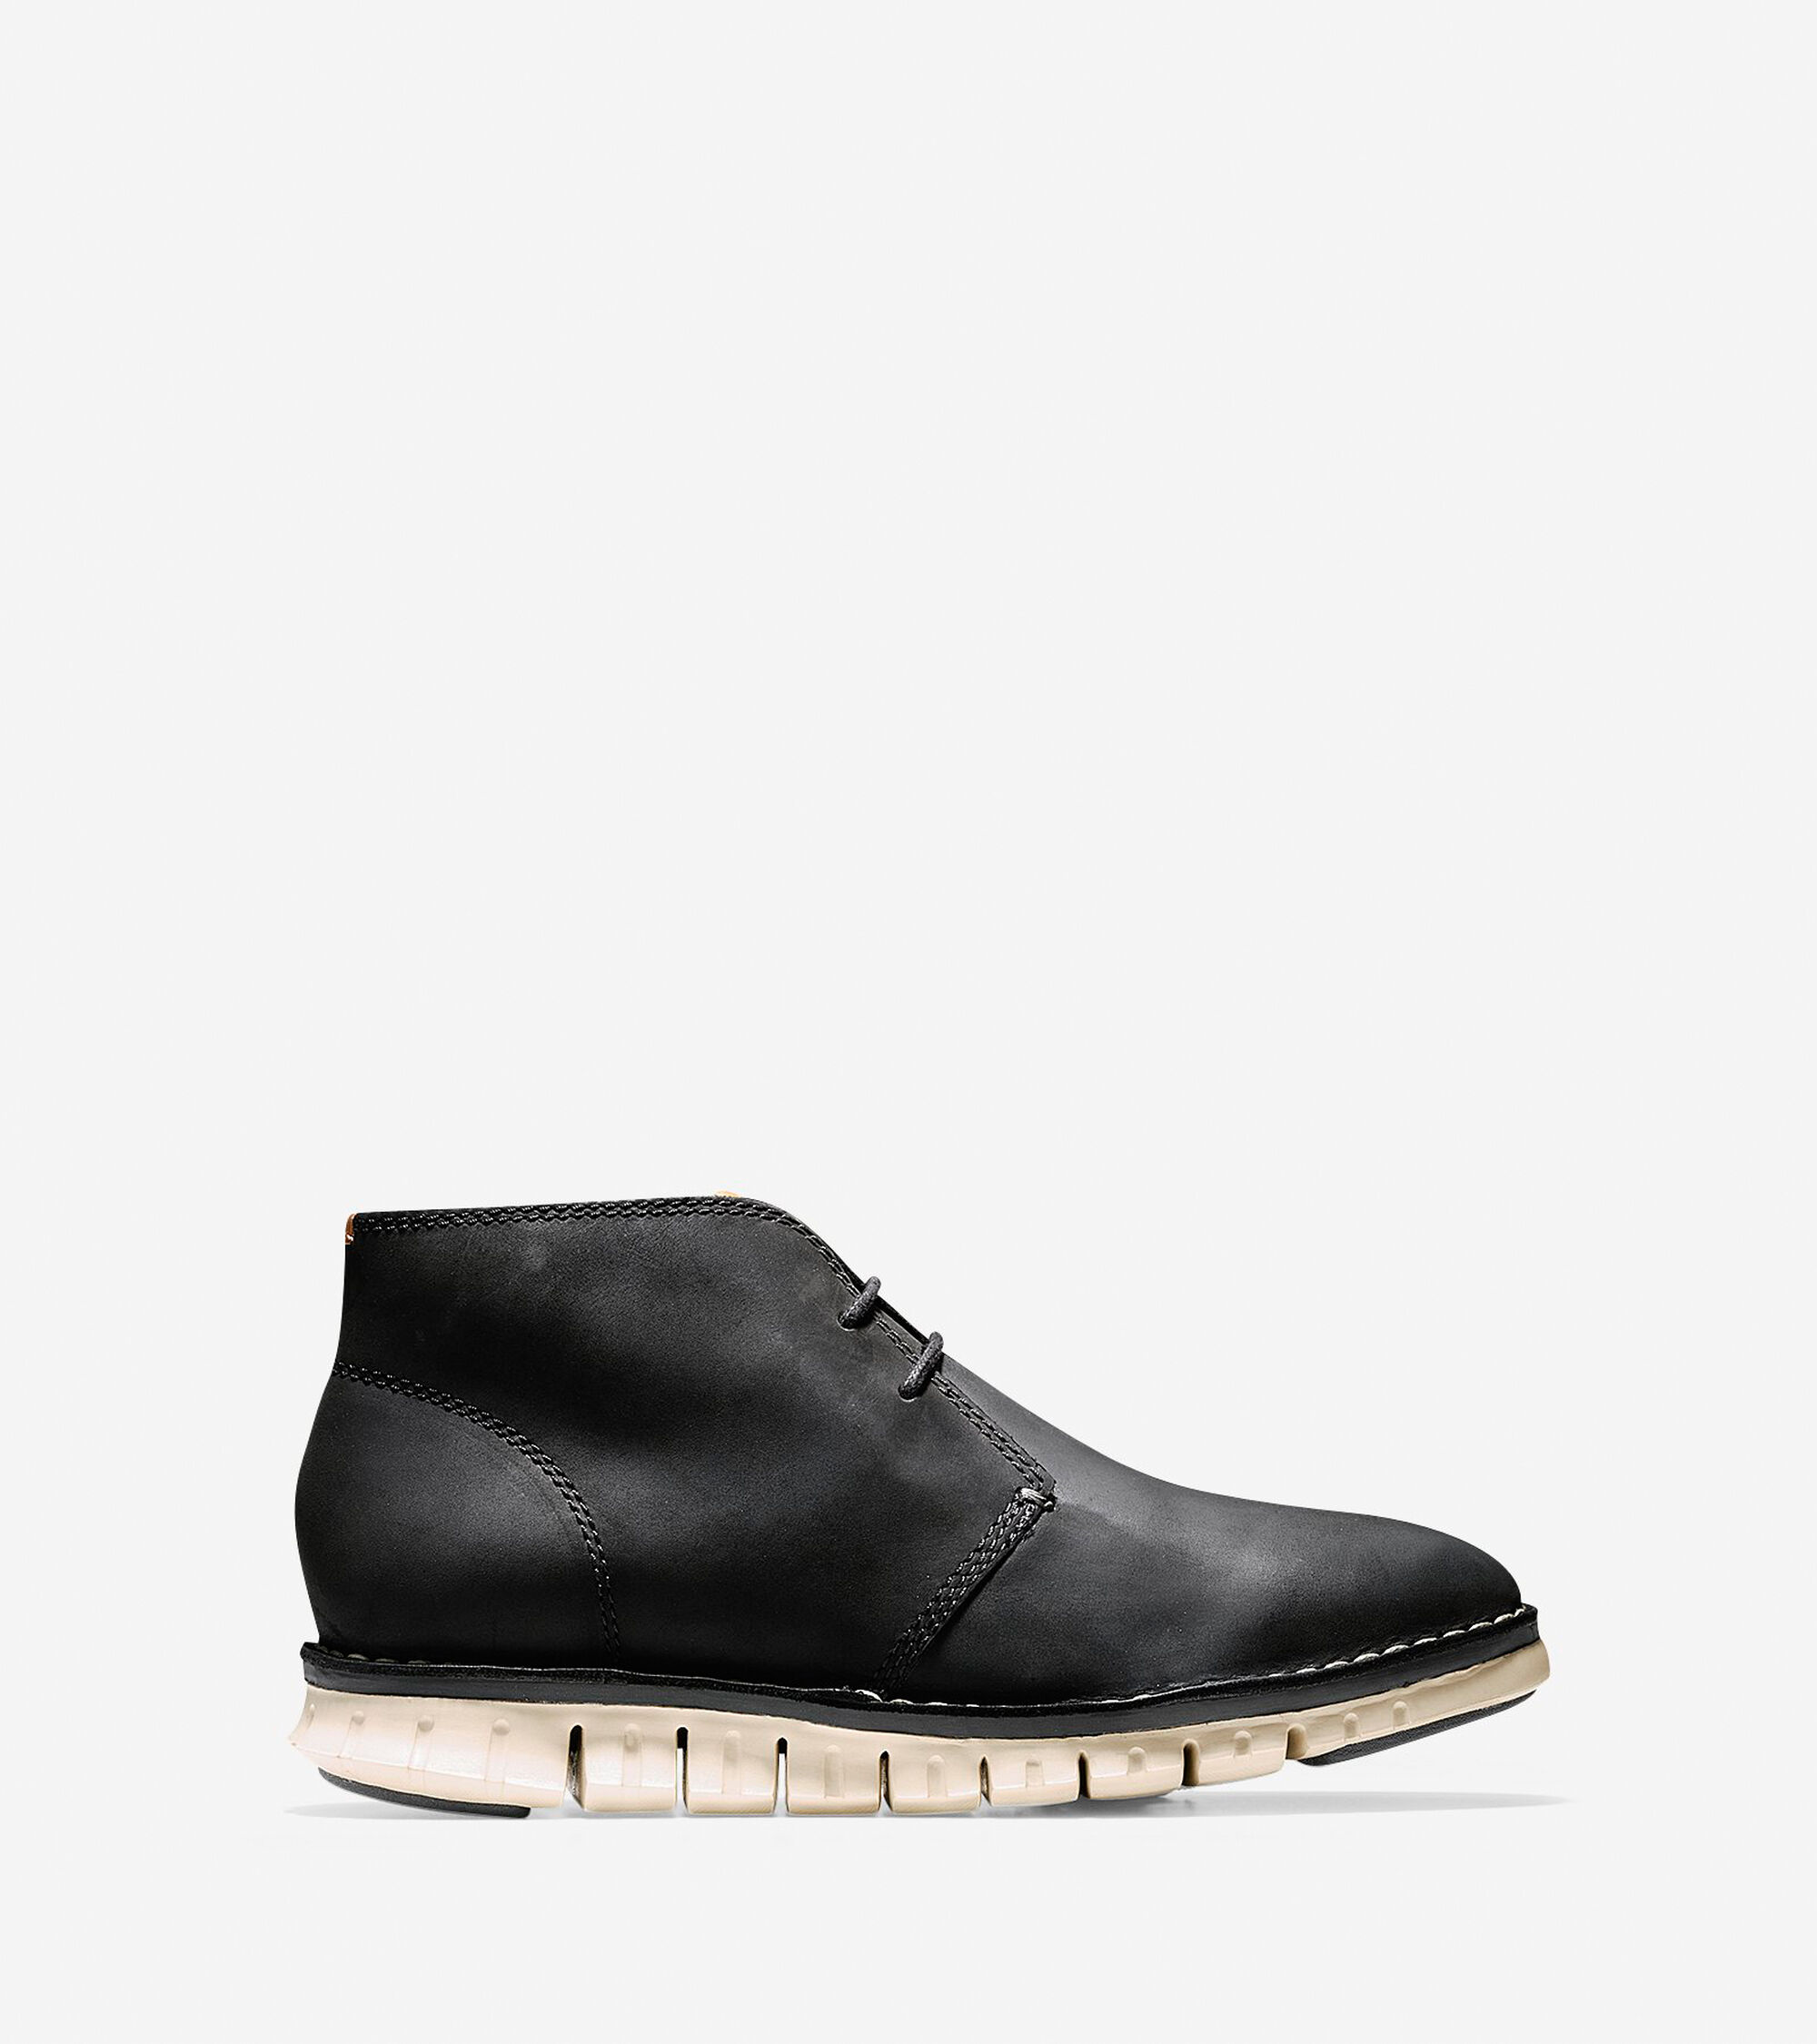 Cole Haan Mens ZEROGRAND Stitch Out Chukka Boot